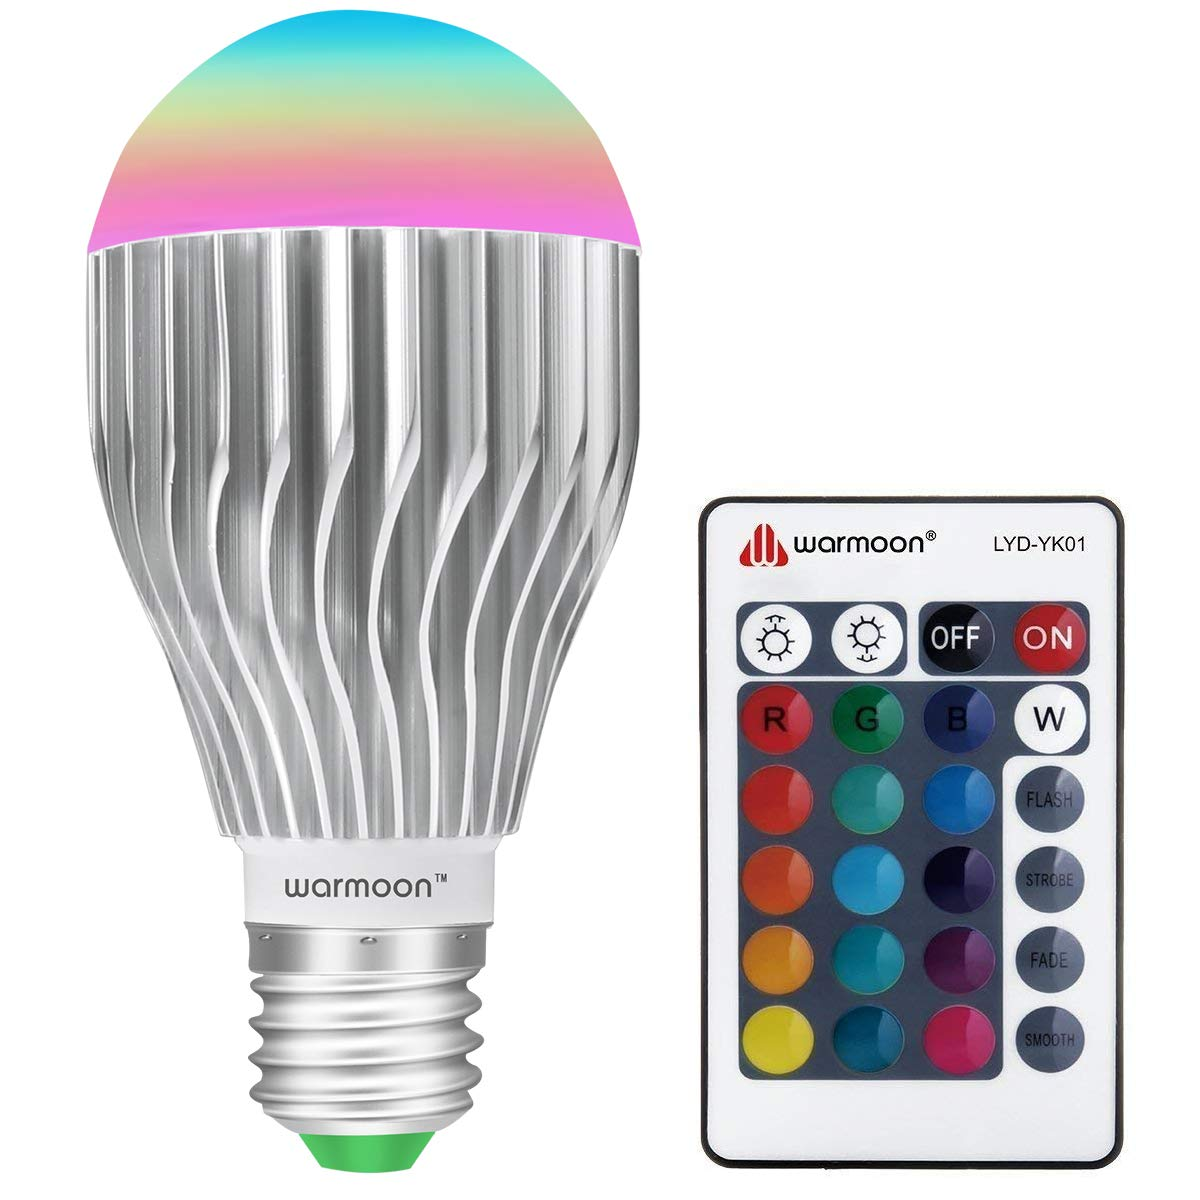 warmoon 002 E27 LED Bulbs Changing Lighting E26 Dimmable Colorful Lamp for Holiday, Atmosphere, Bar, Home Decor, 10W RGB